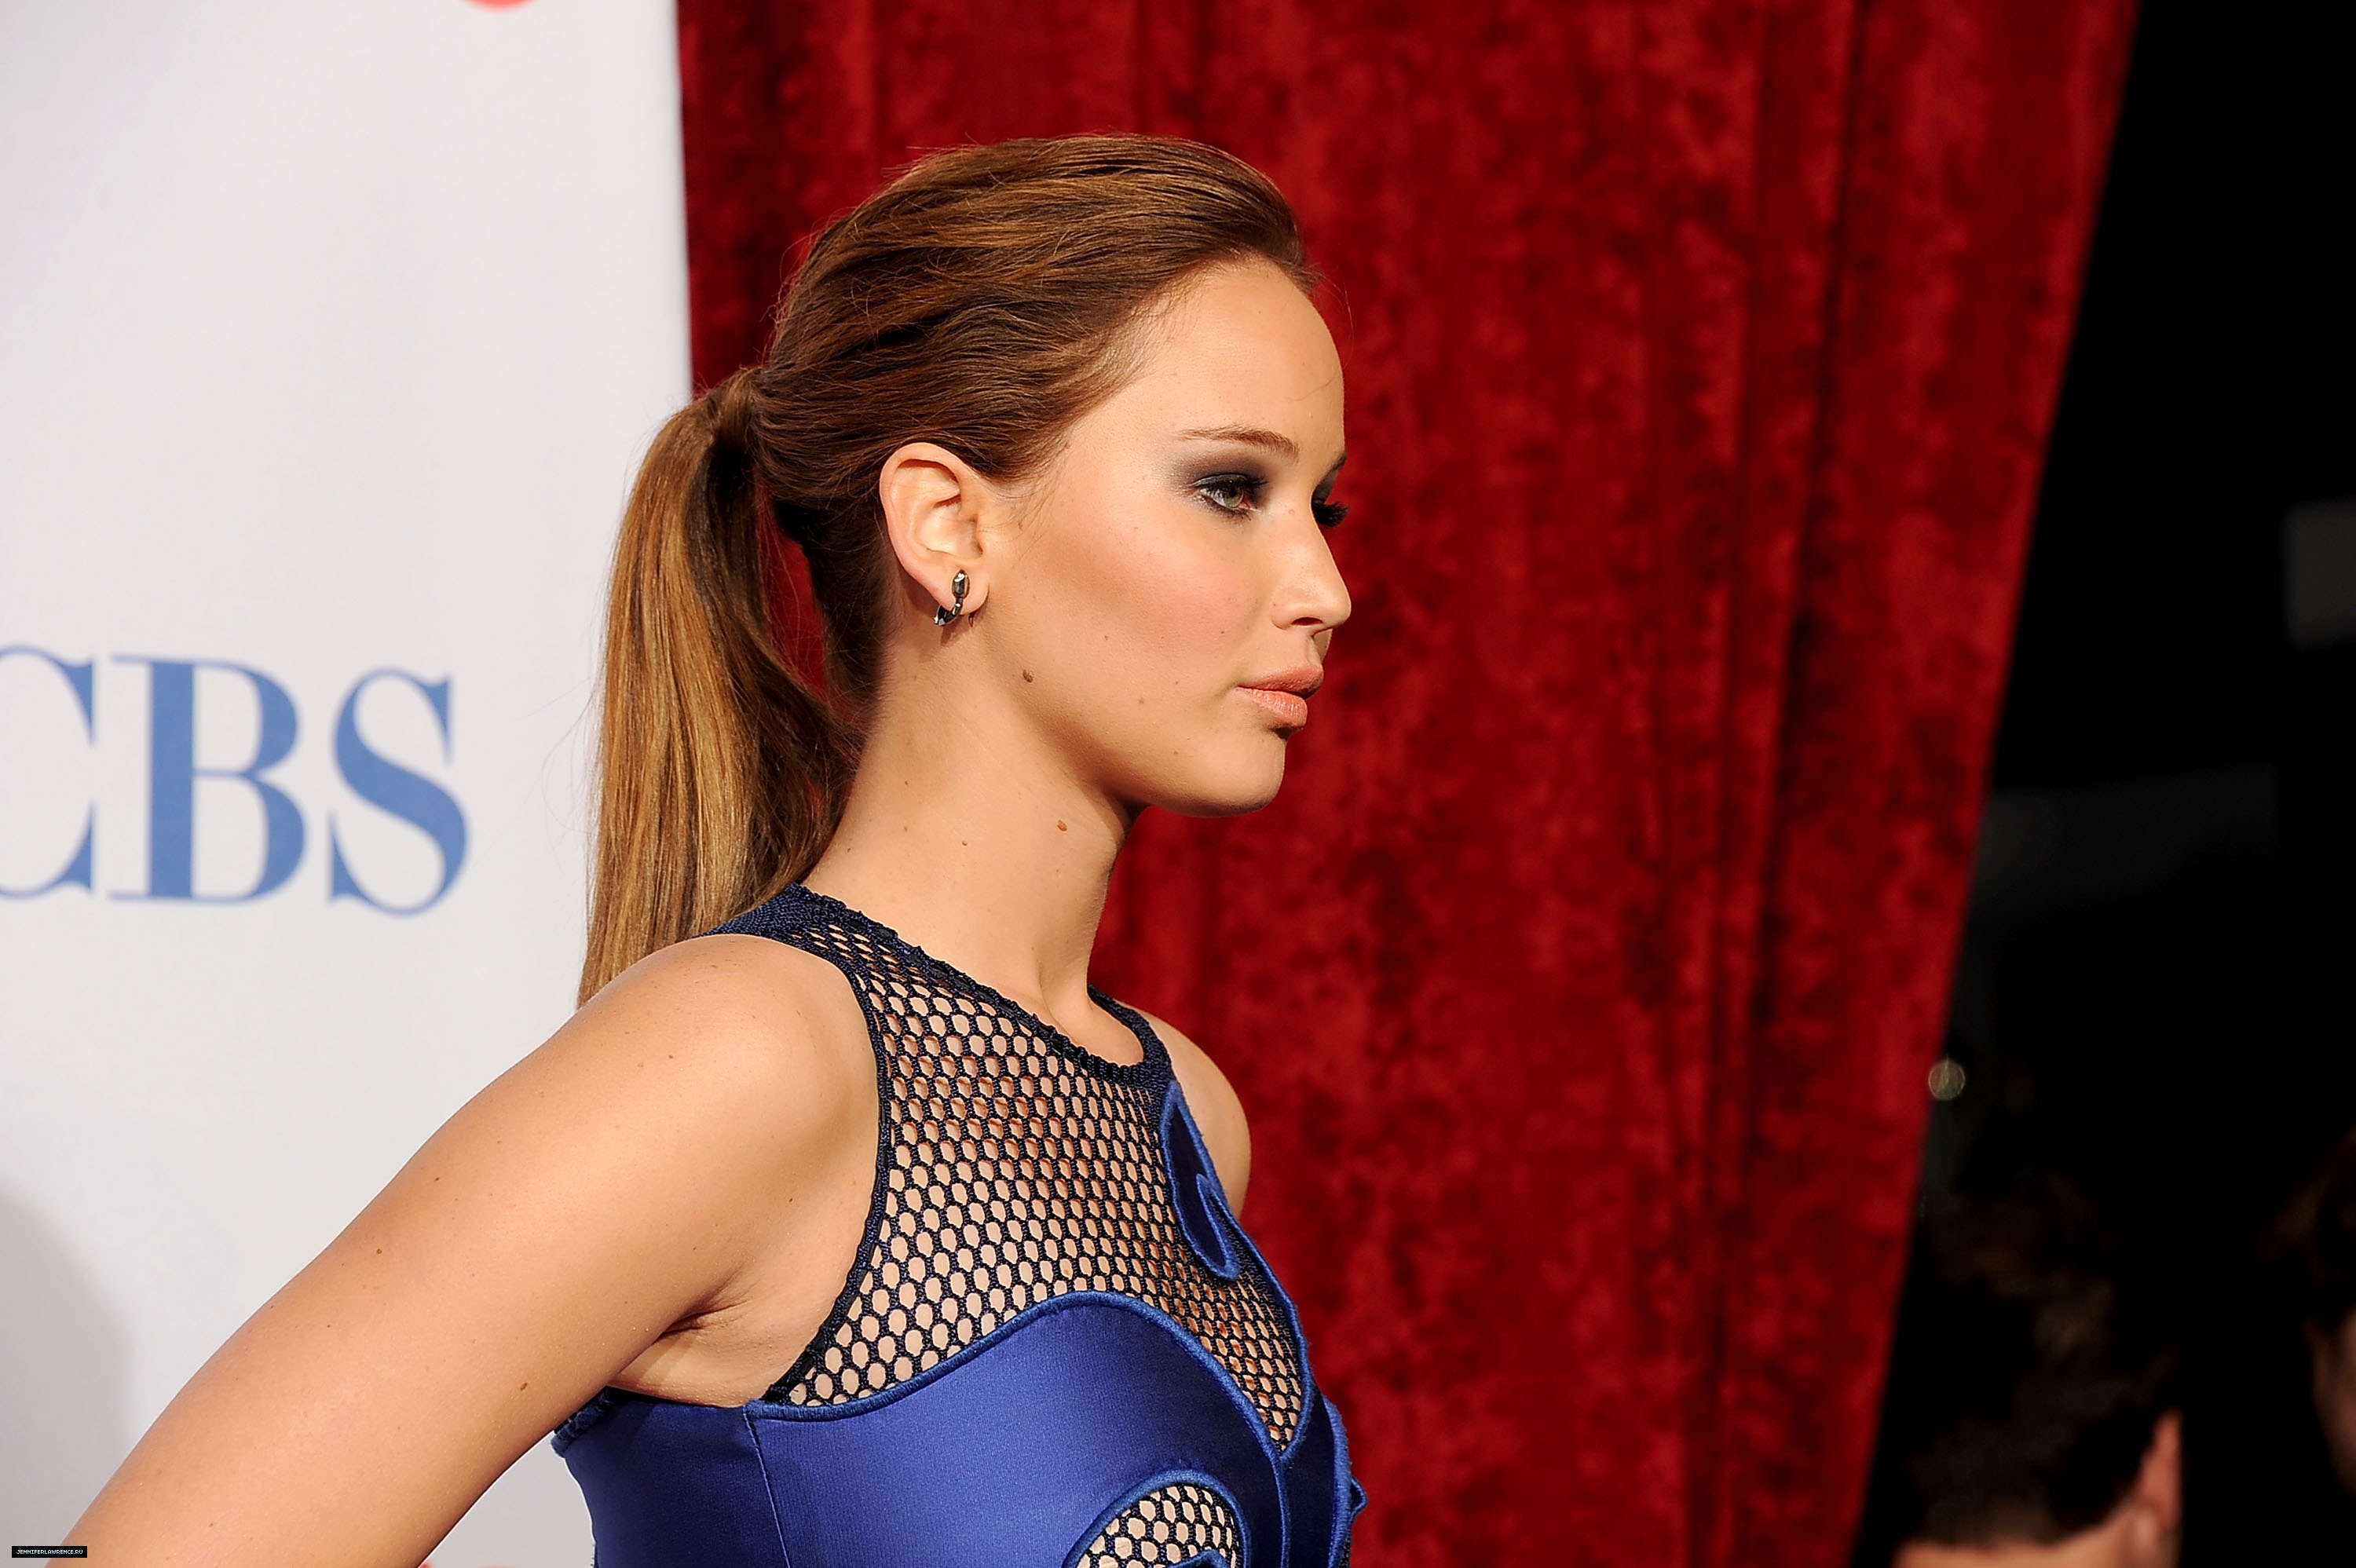 Jennifer Lawrence Hd Wallpapers Pictures Images